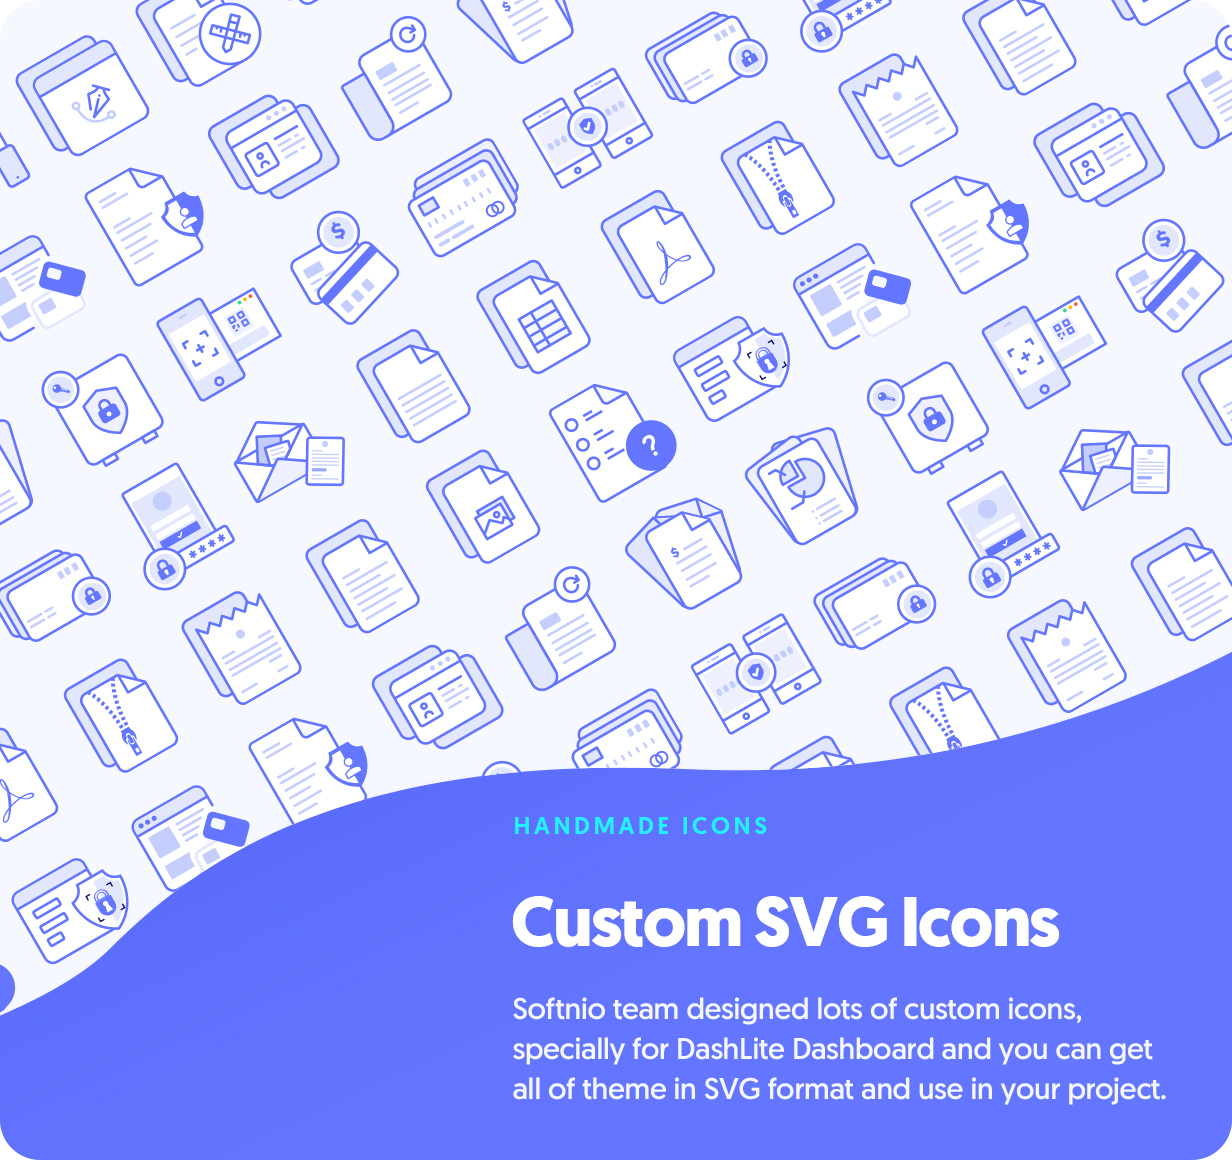 DashLite - Custom Handmade SVG Icons